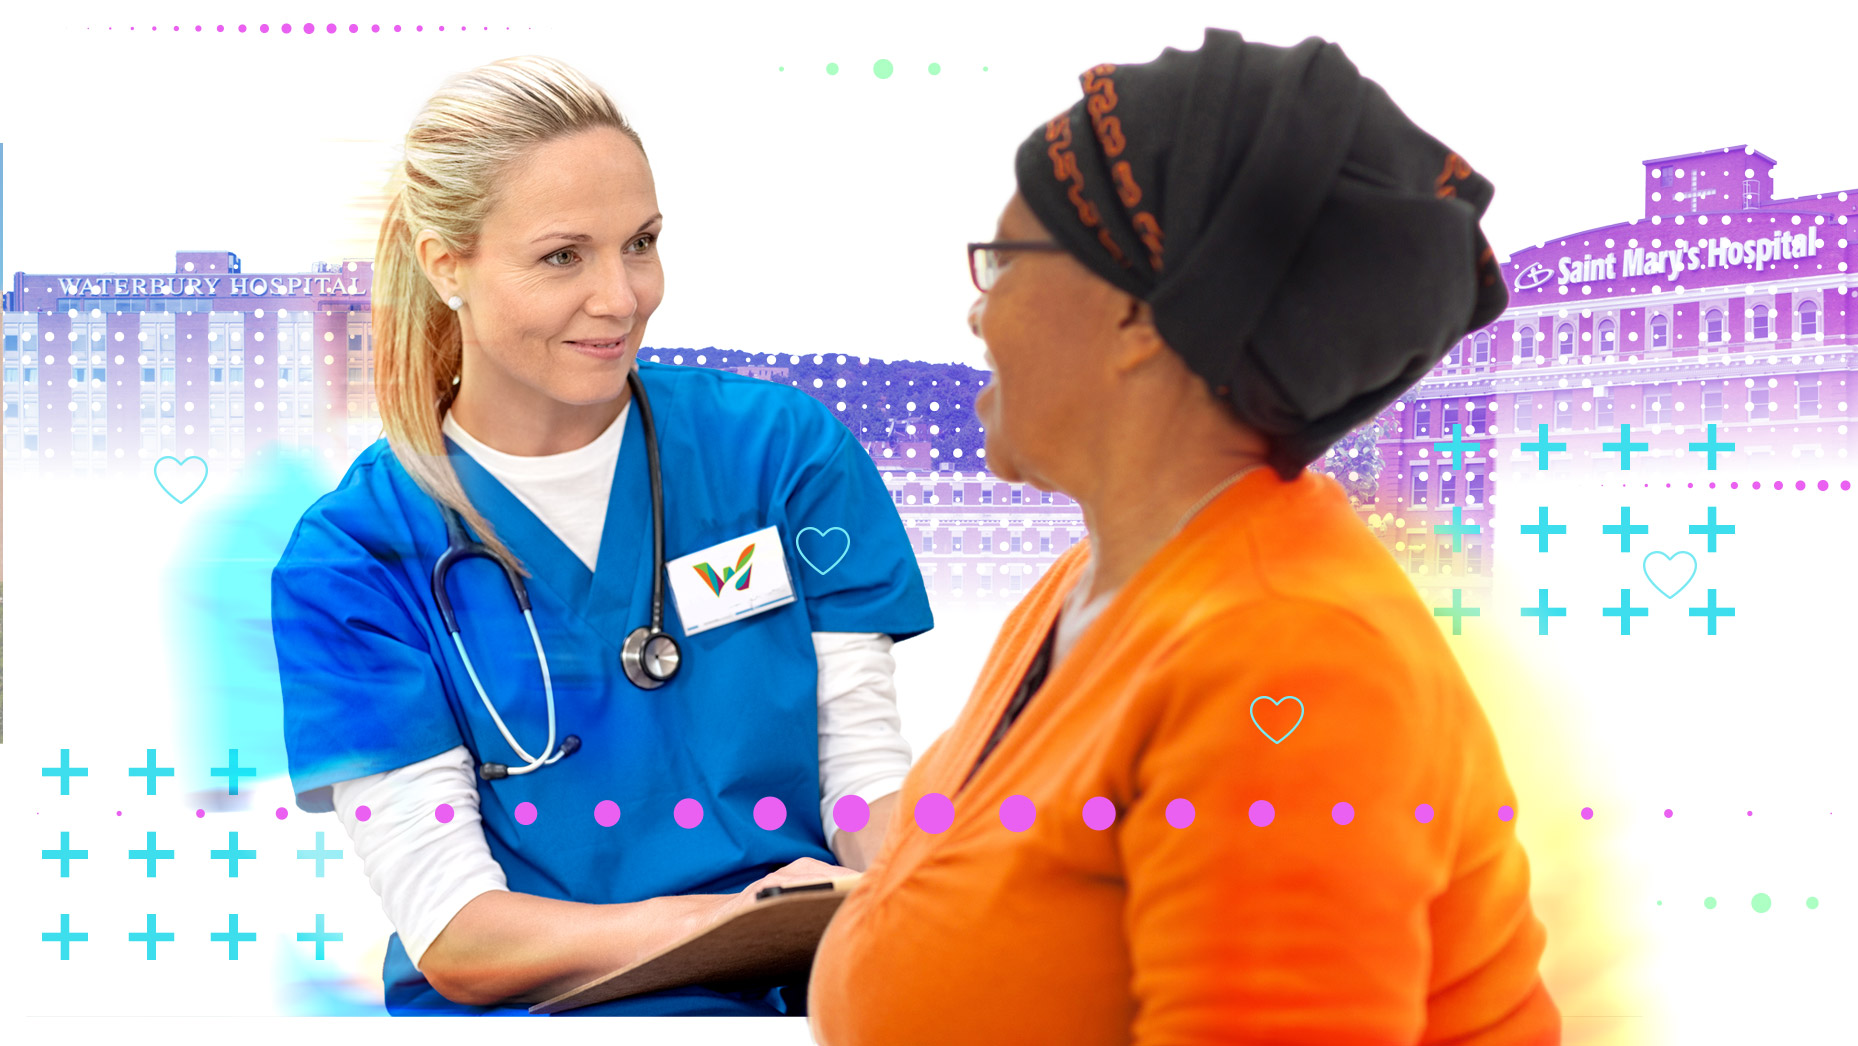 Female healthcare worker wearing a Waterbury badge speaking to a female patient and taking notes